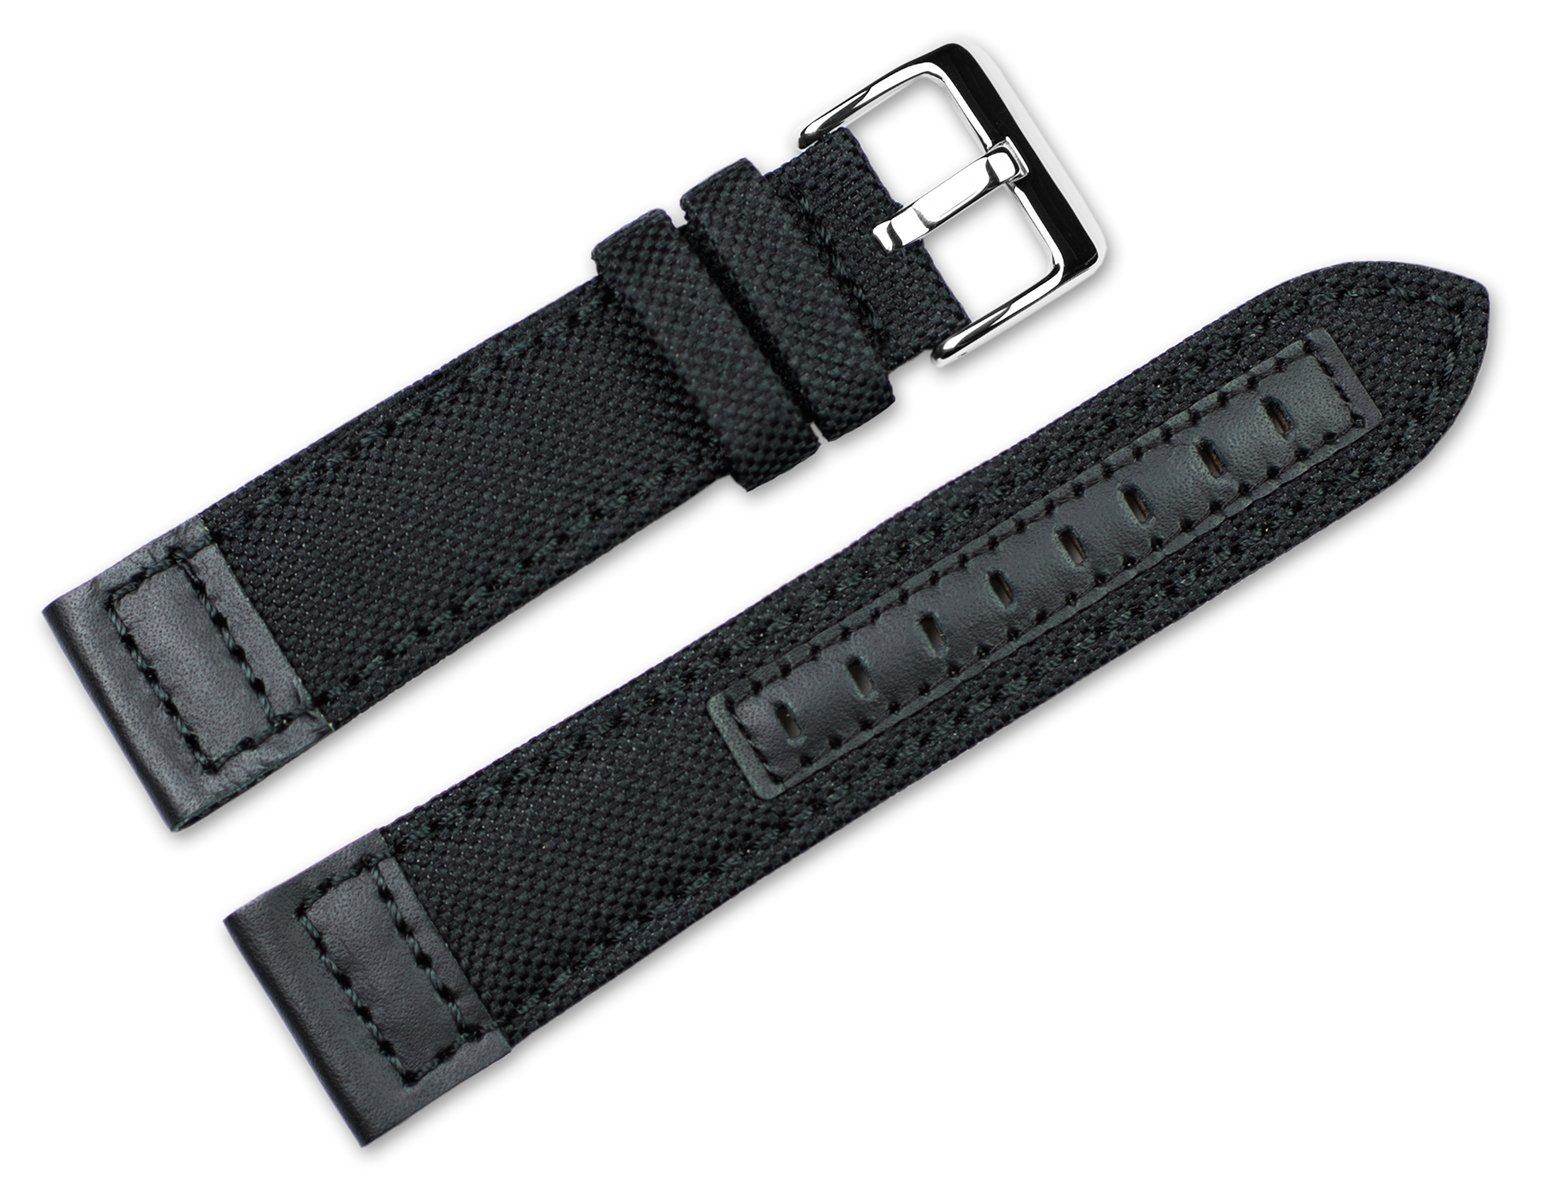 20mm Replacement Watch Band - Nylon Canvas with Leather Trim - Black Watch Strap